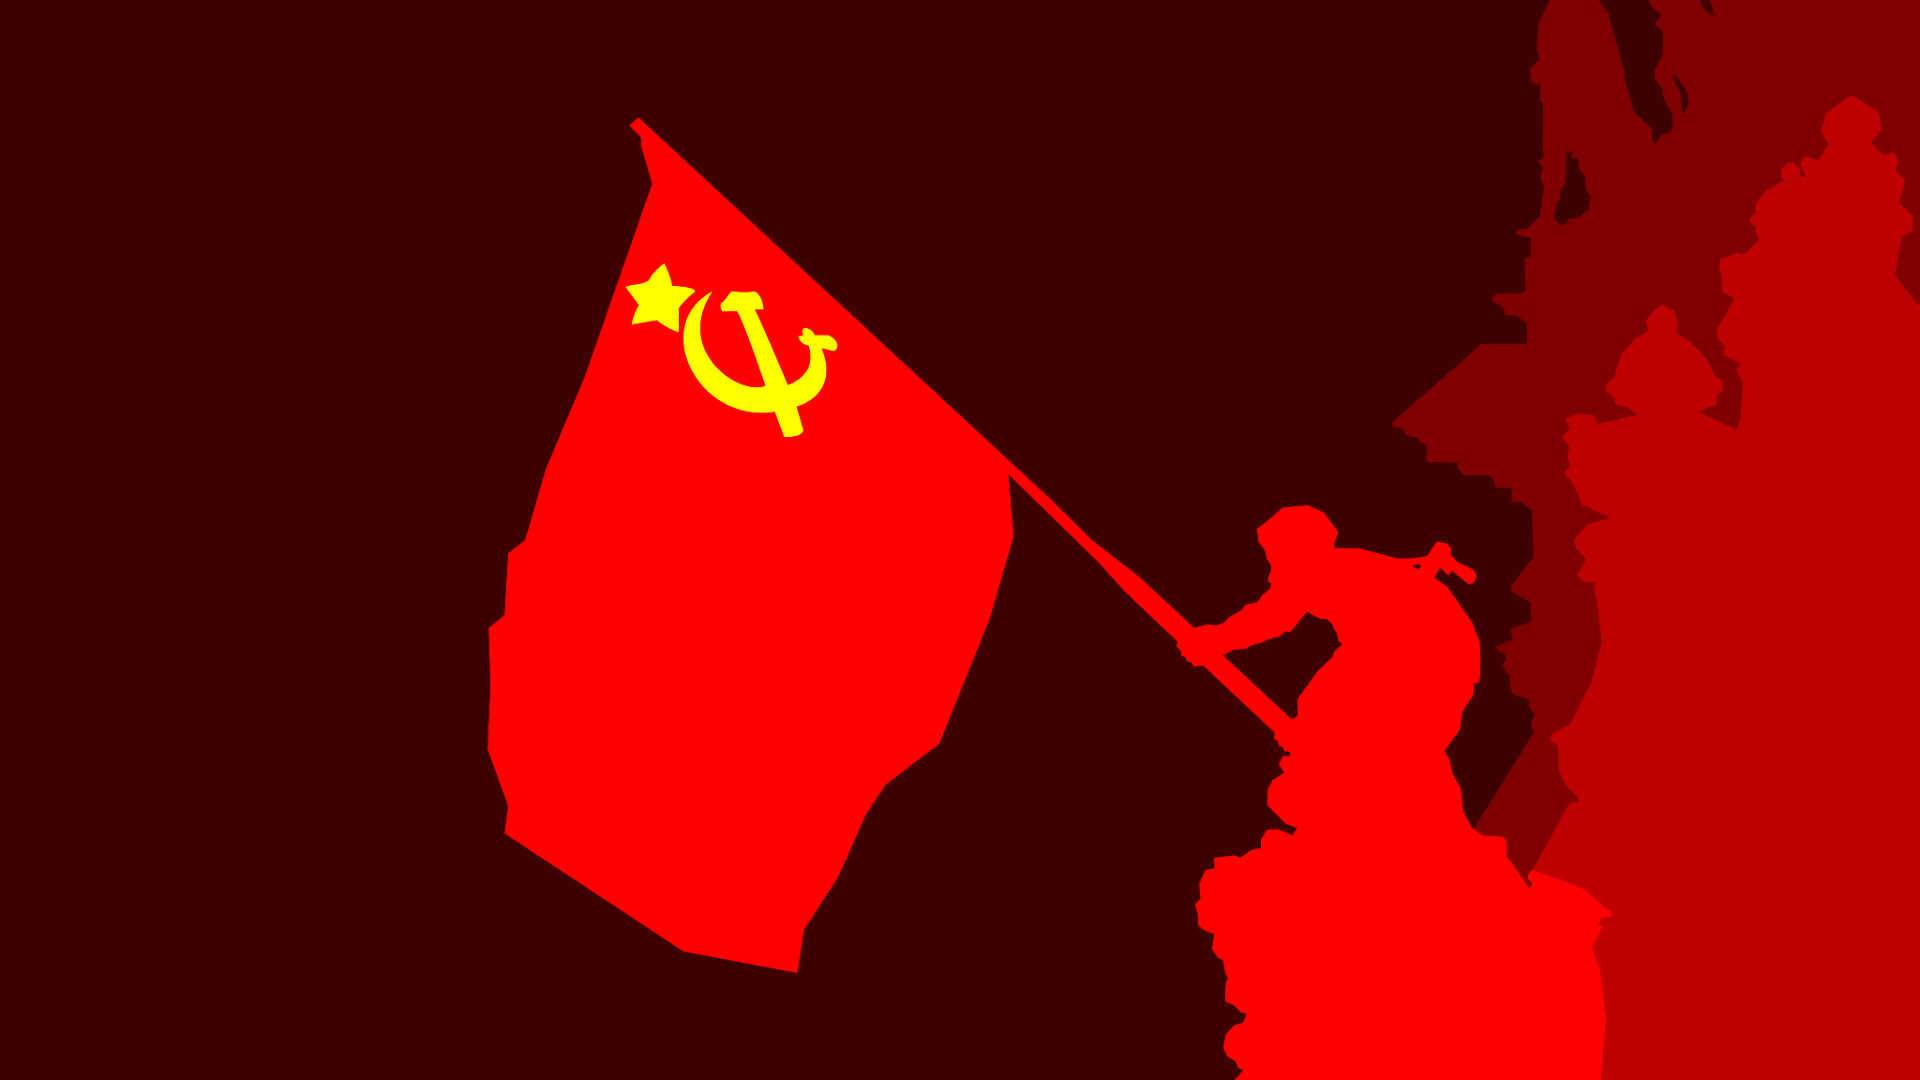 the issue of communism that rooted the killings of the soviet union